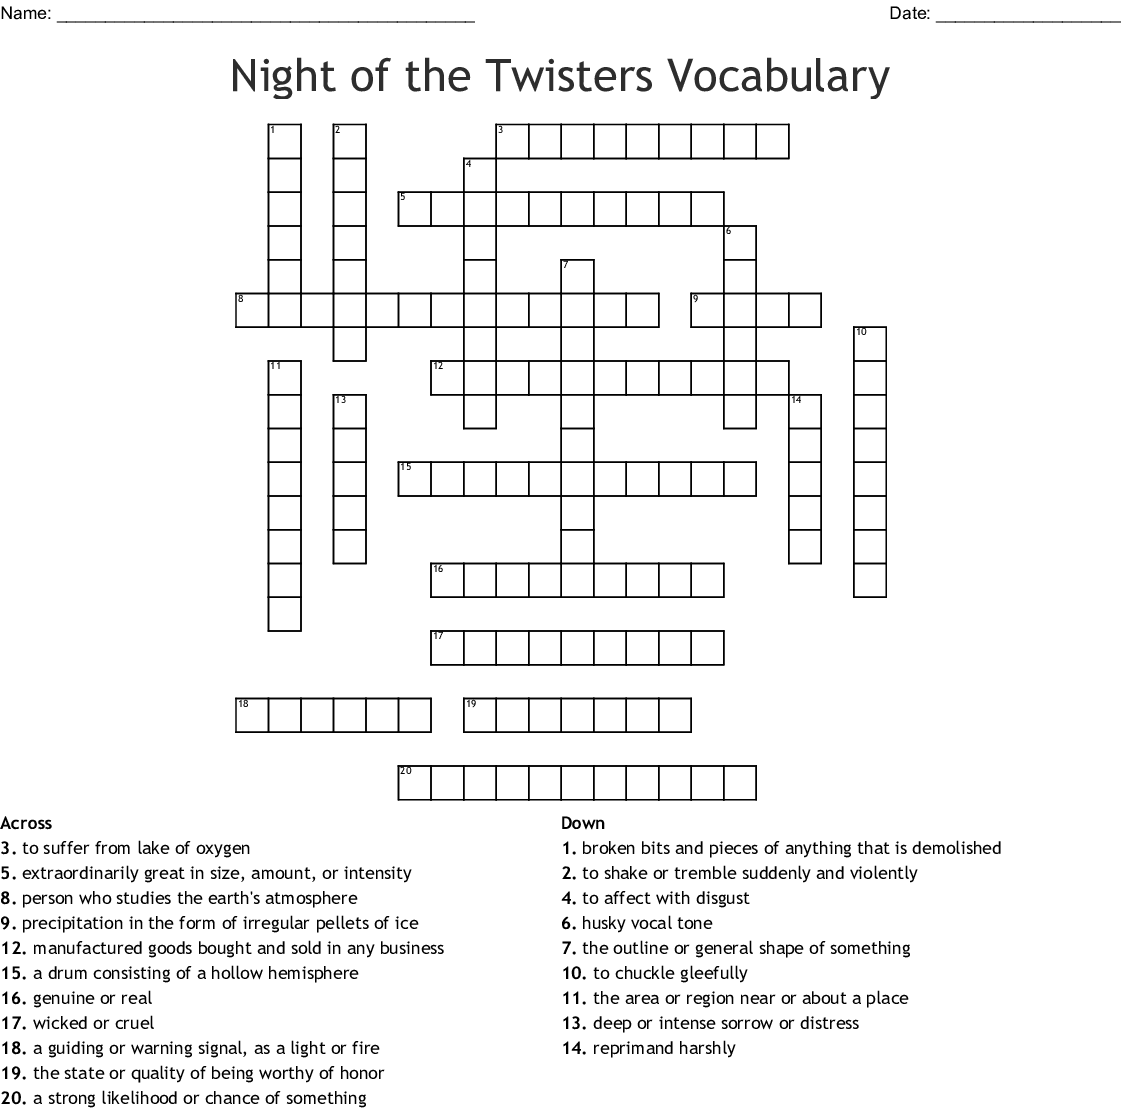 Night Of The Twisters Vocabulary Crossword